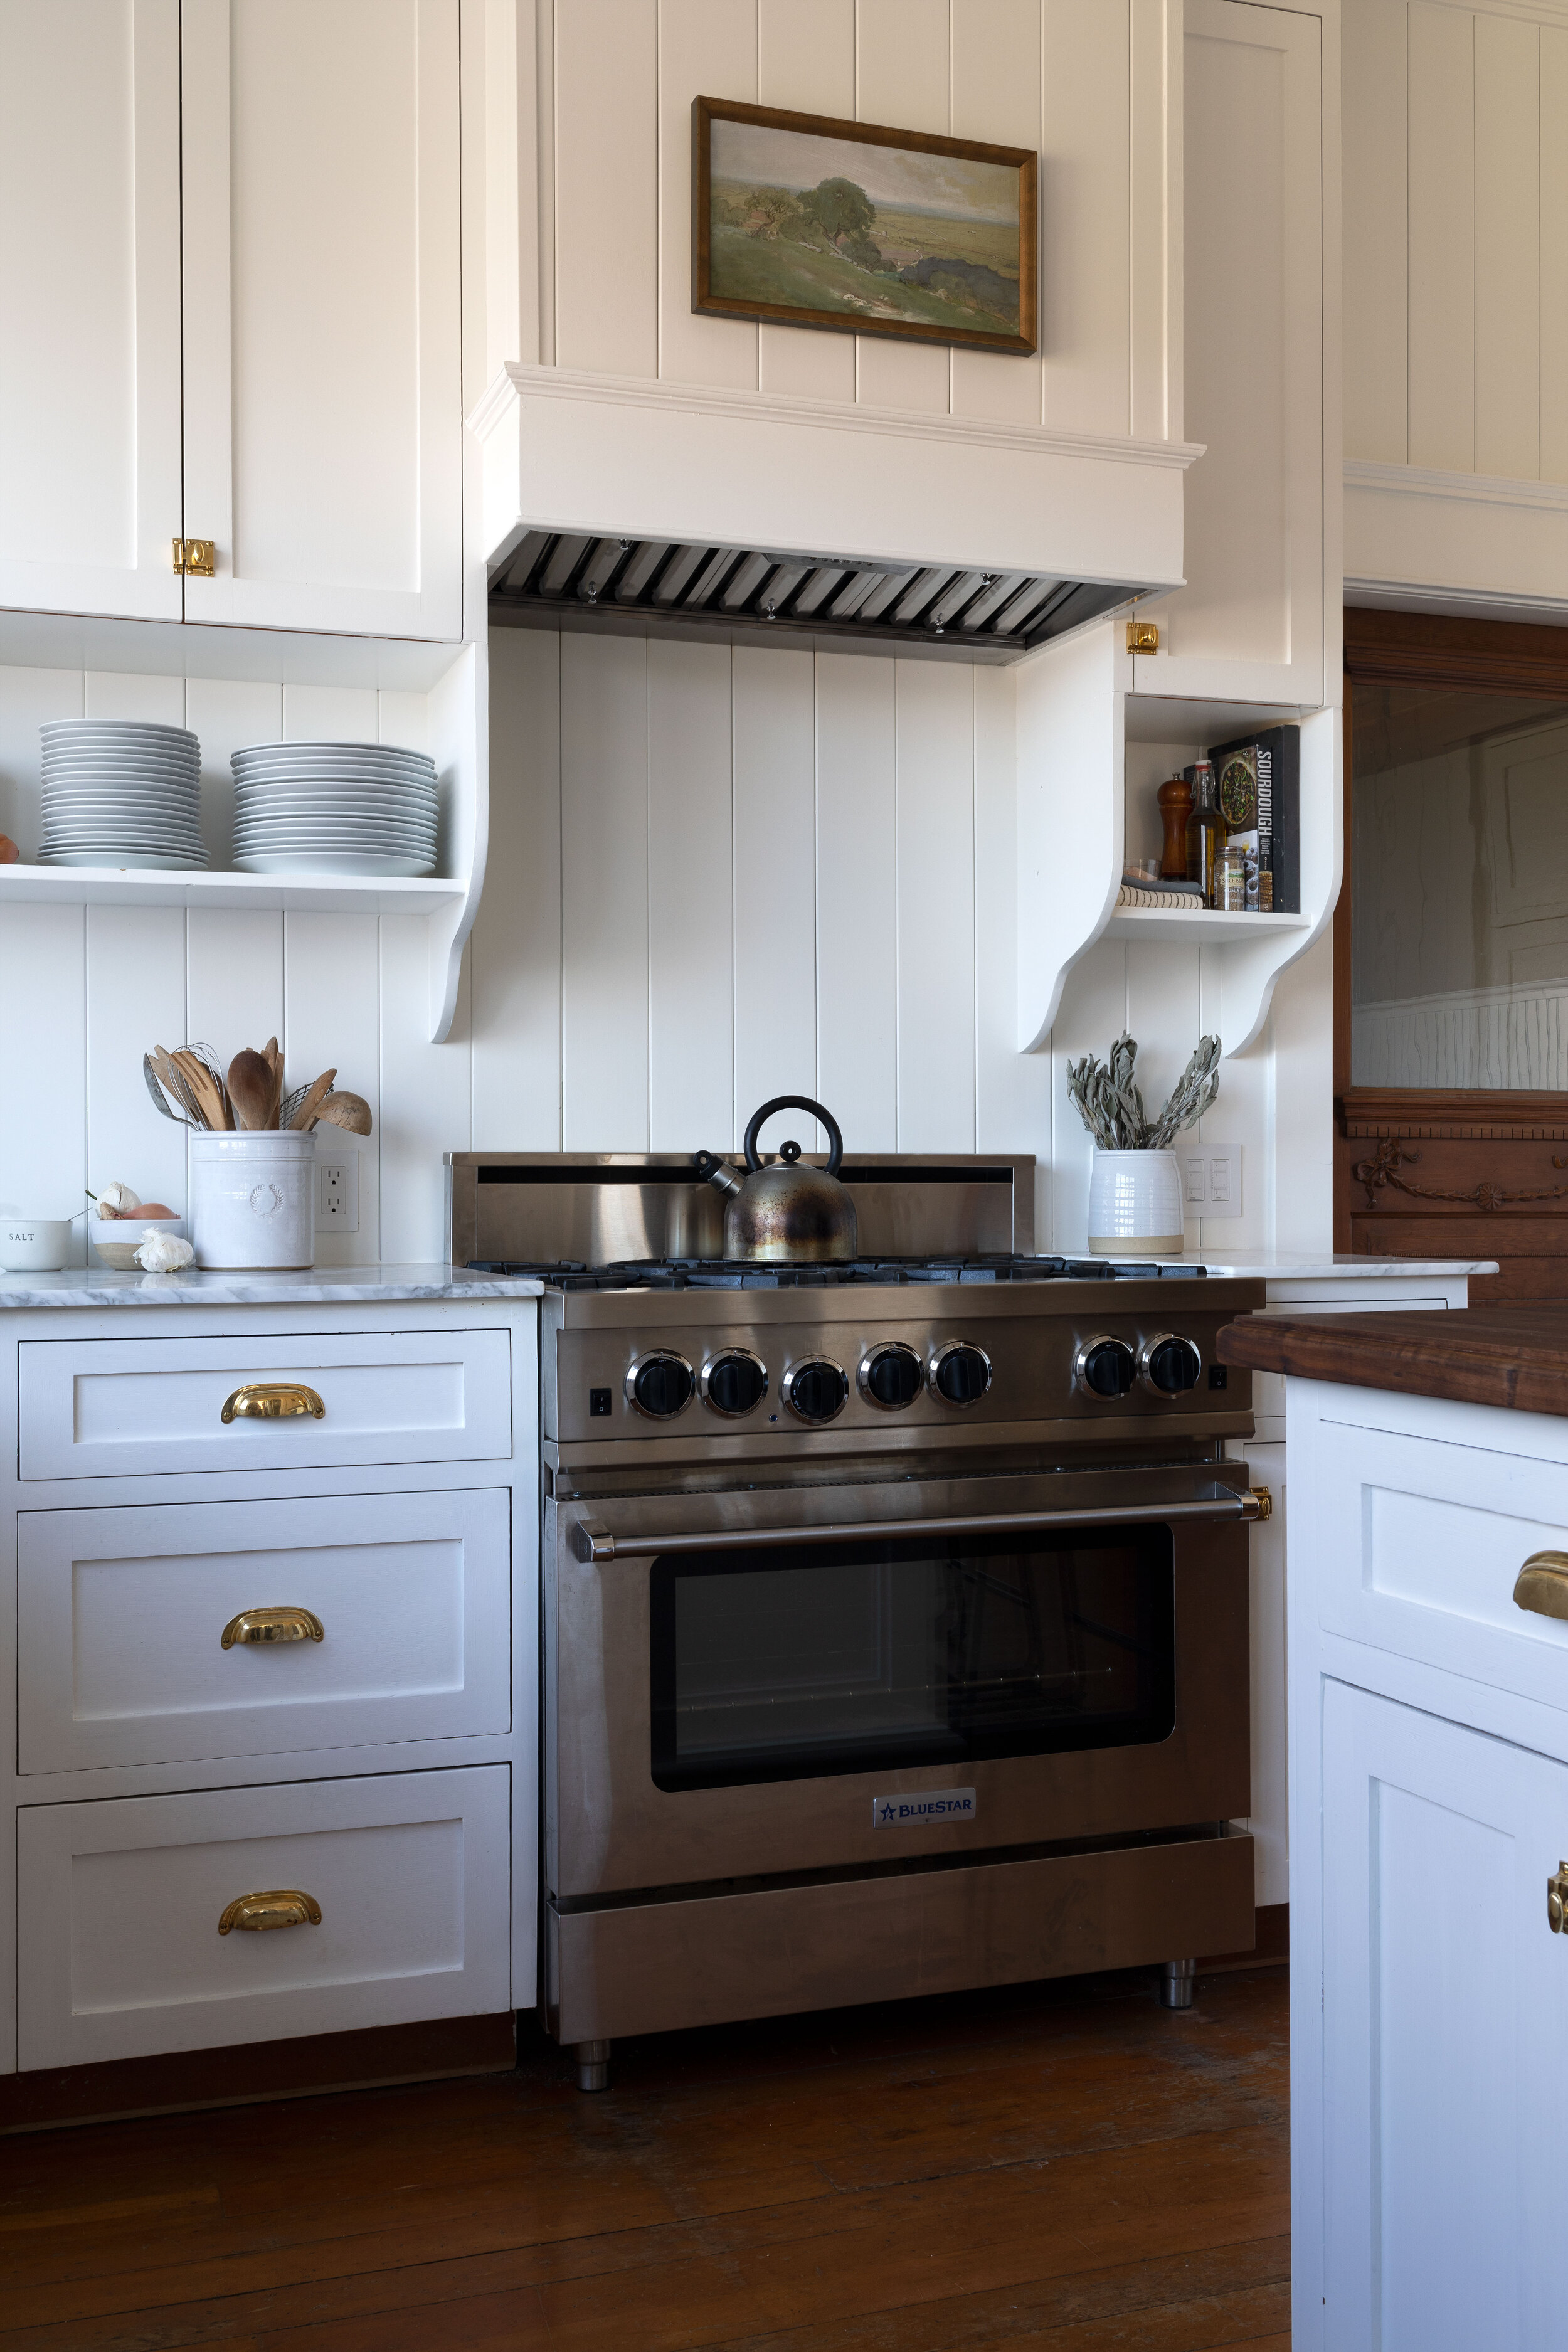 - Why We Added A Backsplash To Our Range (+ How The Paneling Is